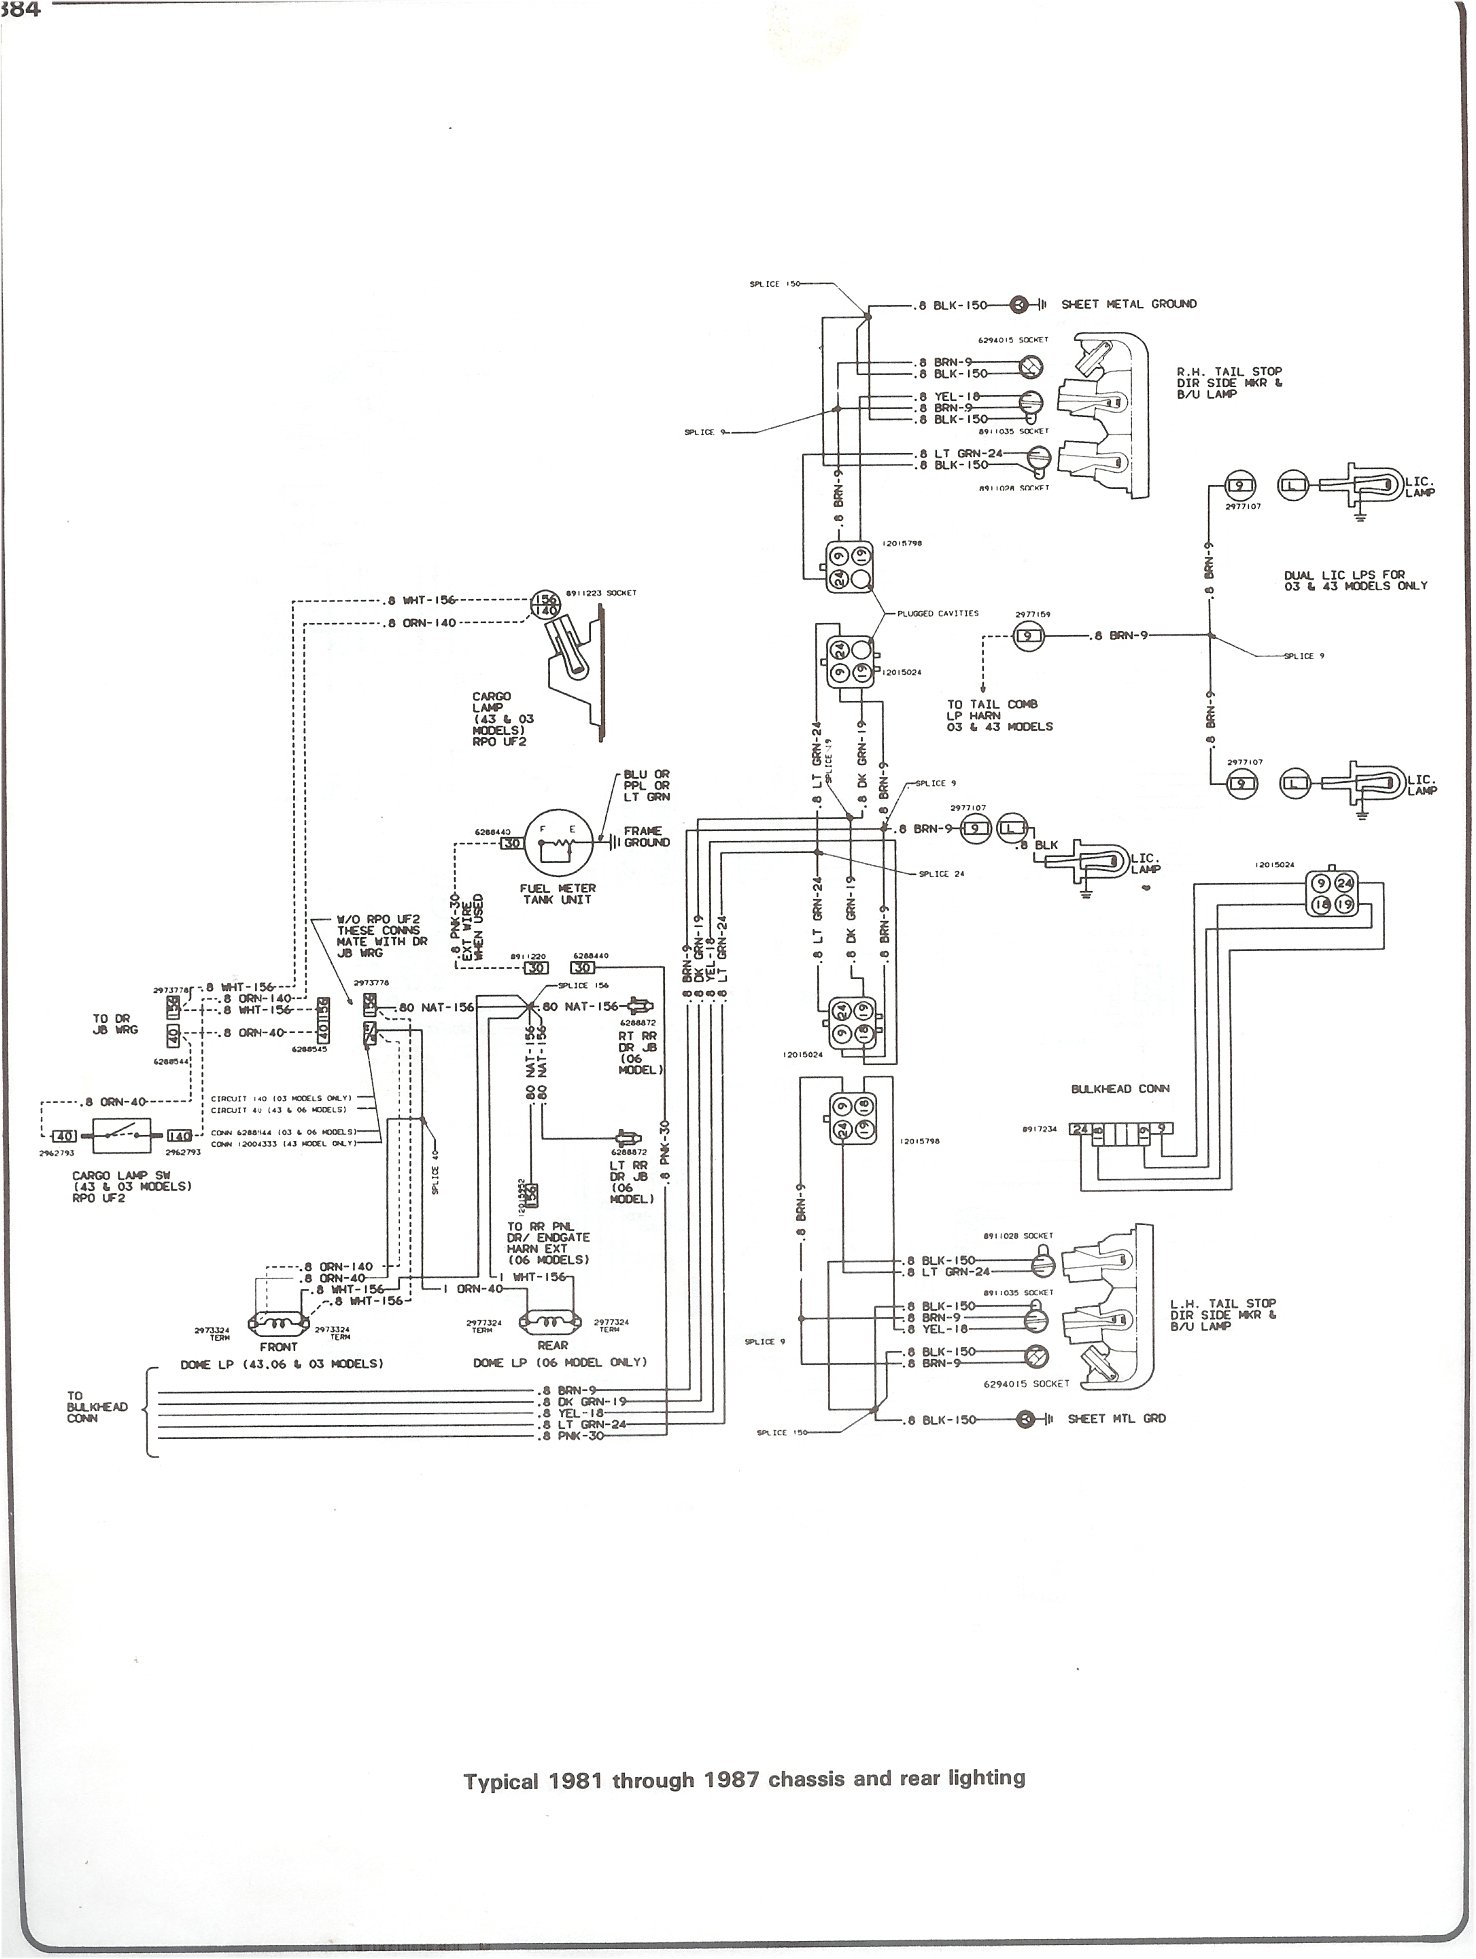 81 87_chass_rr_light complete 73 87 wiring diagrams 73-87 Chevy Wiring Diagrams Site at panicattacktreatment.co